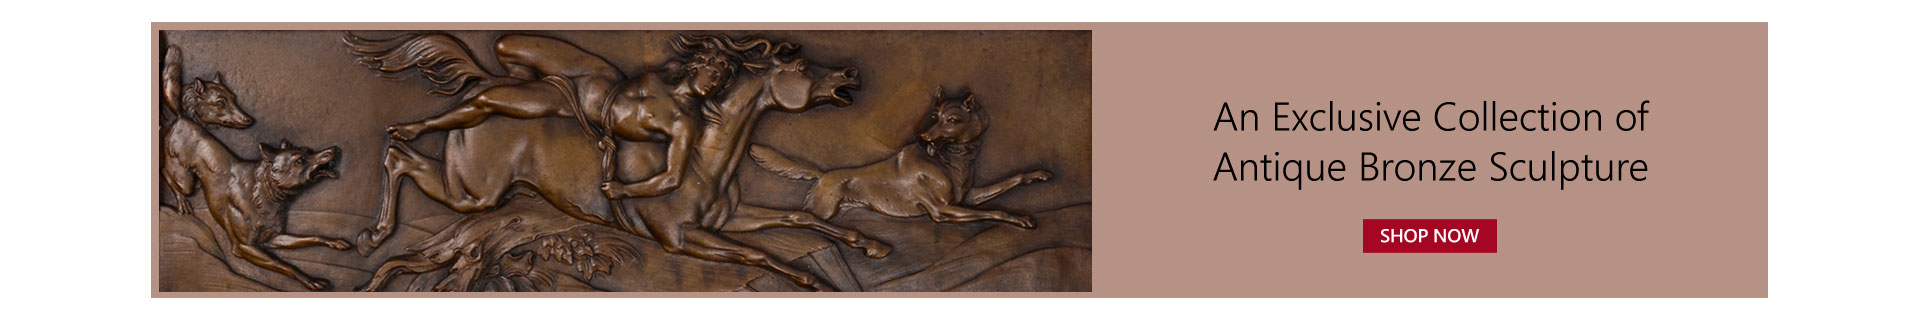 An Exclusive Collection of Antique Bronze Sculpture